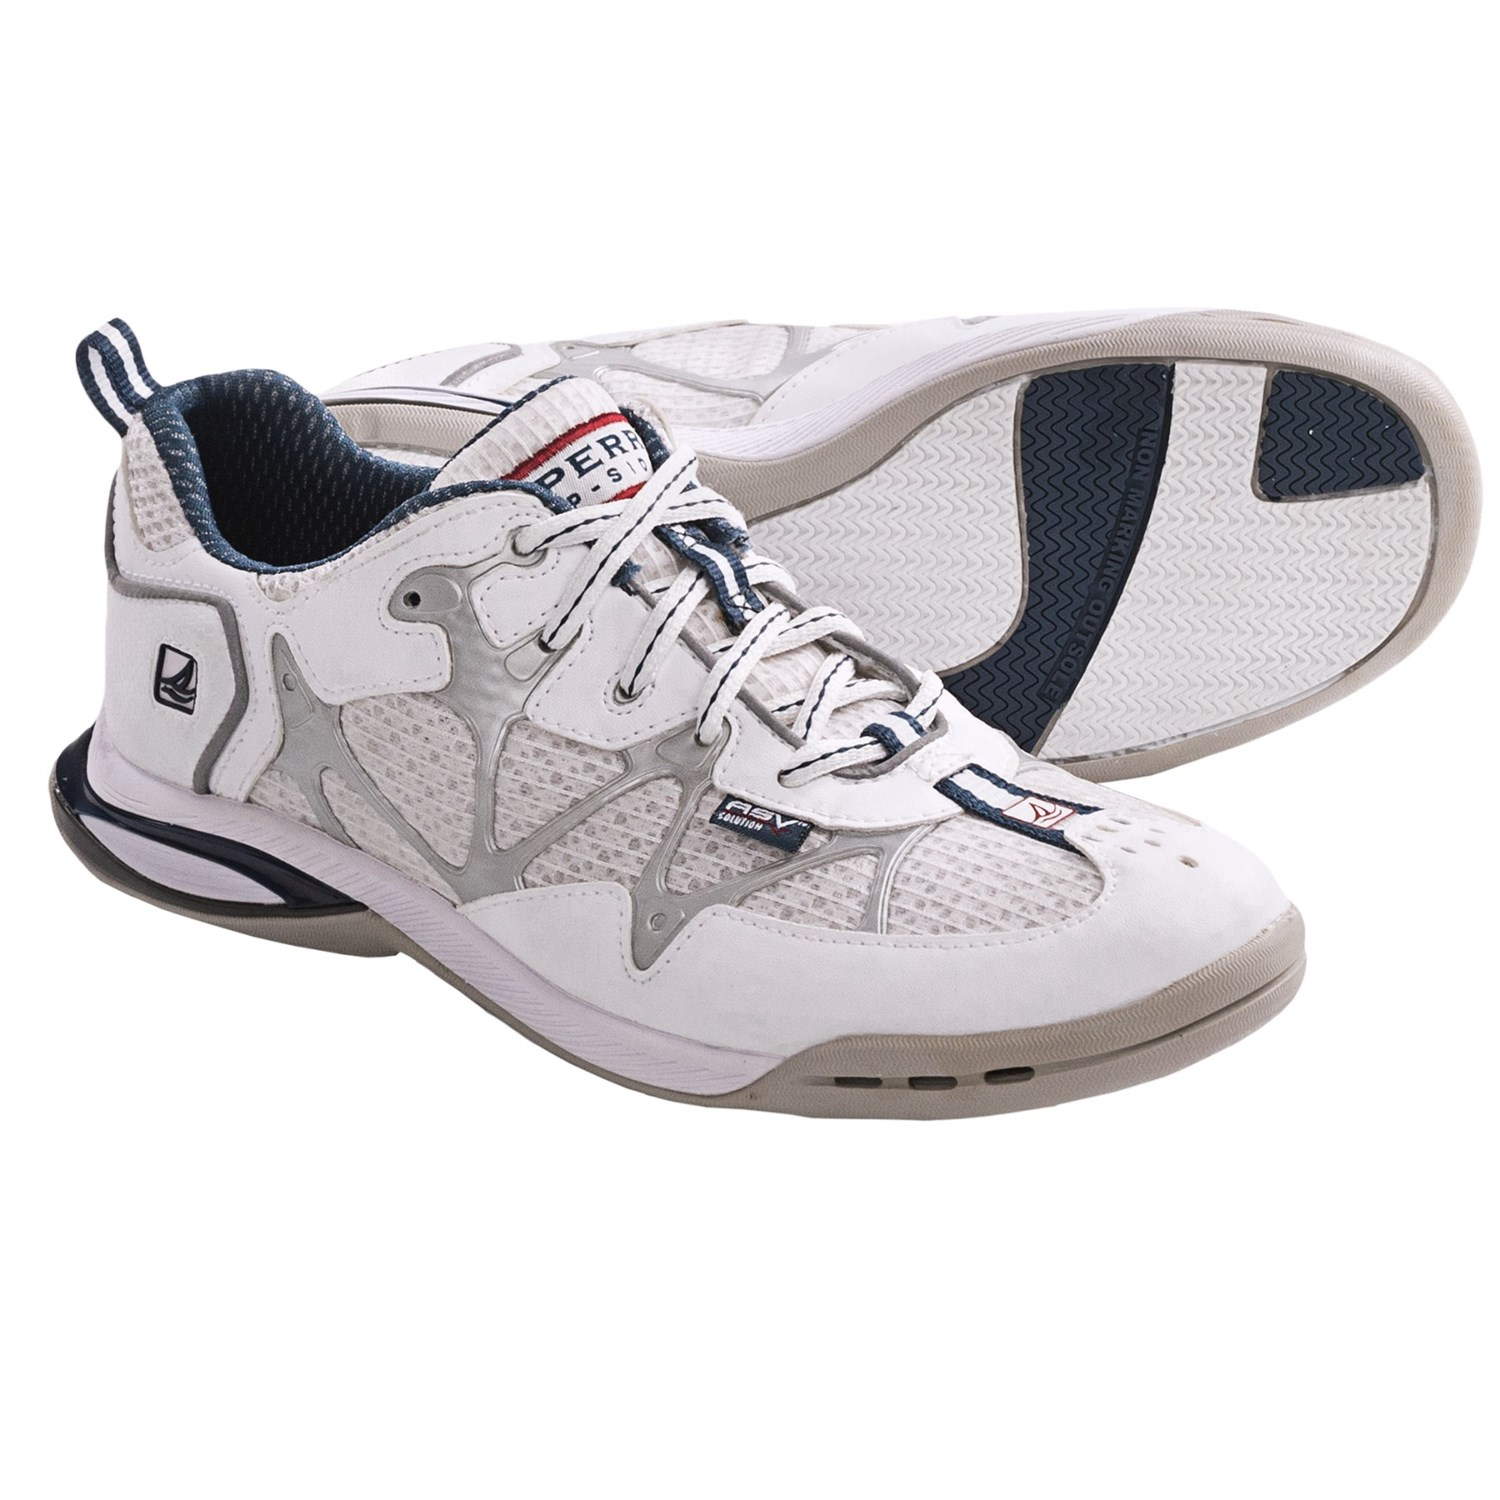 Sperry Top-Sider ASV Athletic Boat Shoes (For Women) in White